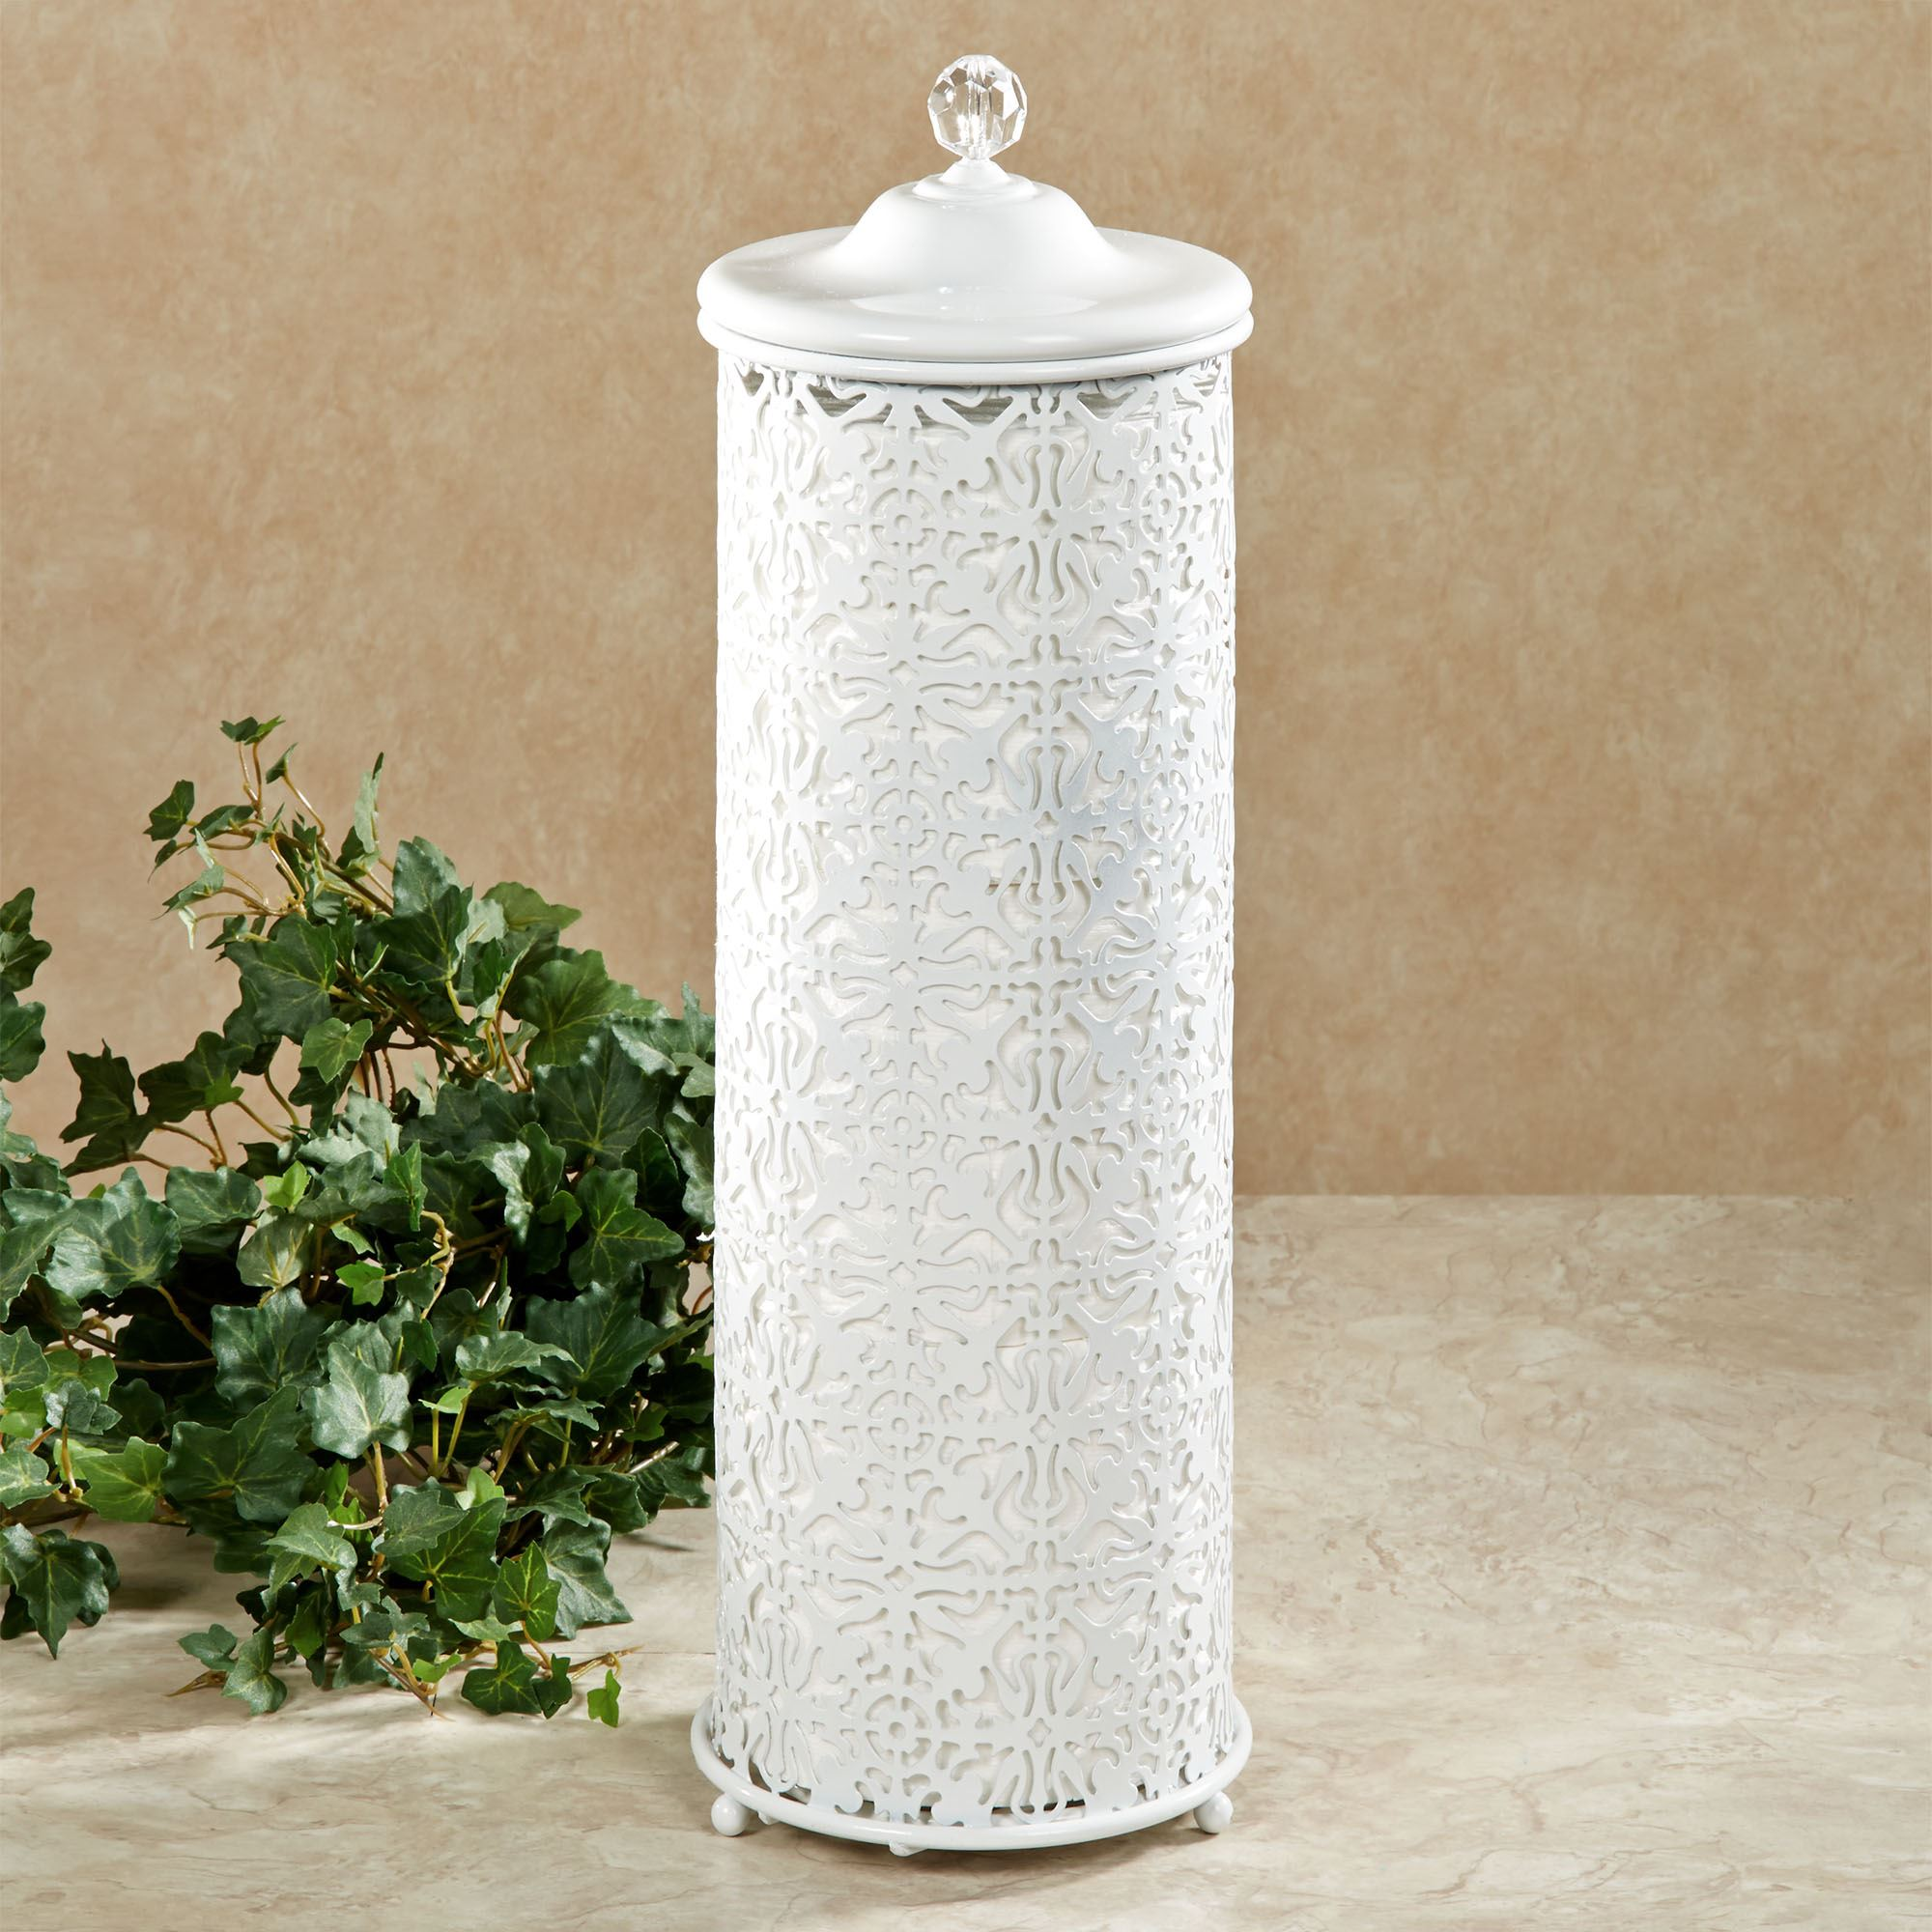 Covered Toilet Paper Storage Lace Design Metal Toilet Tissue Holder